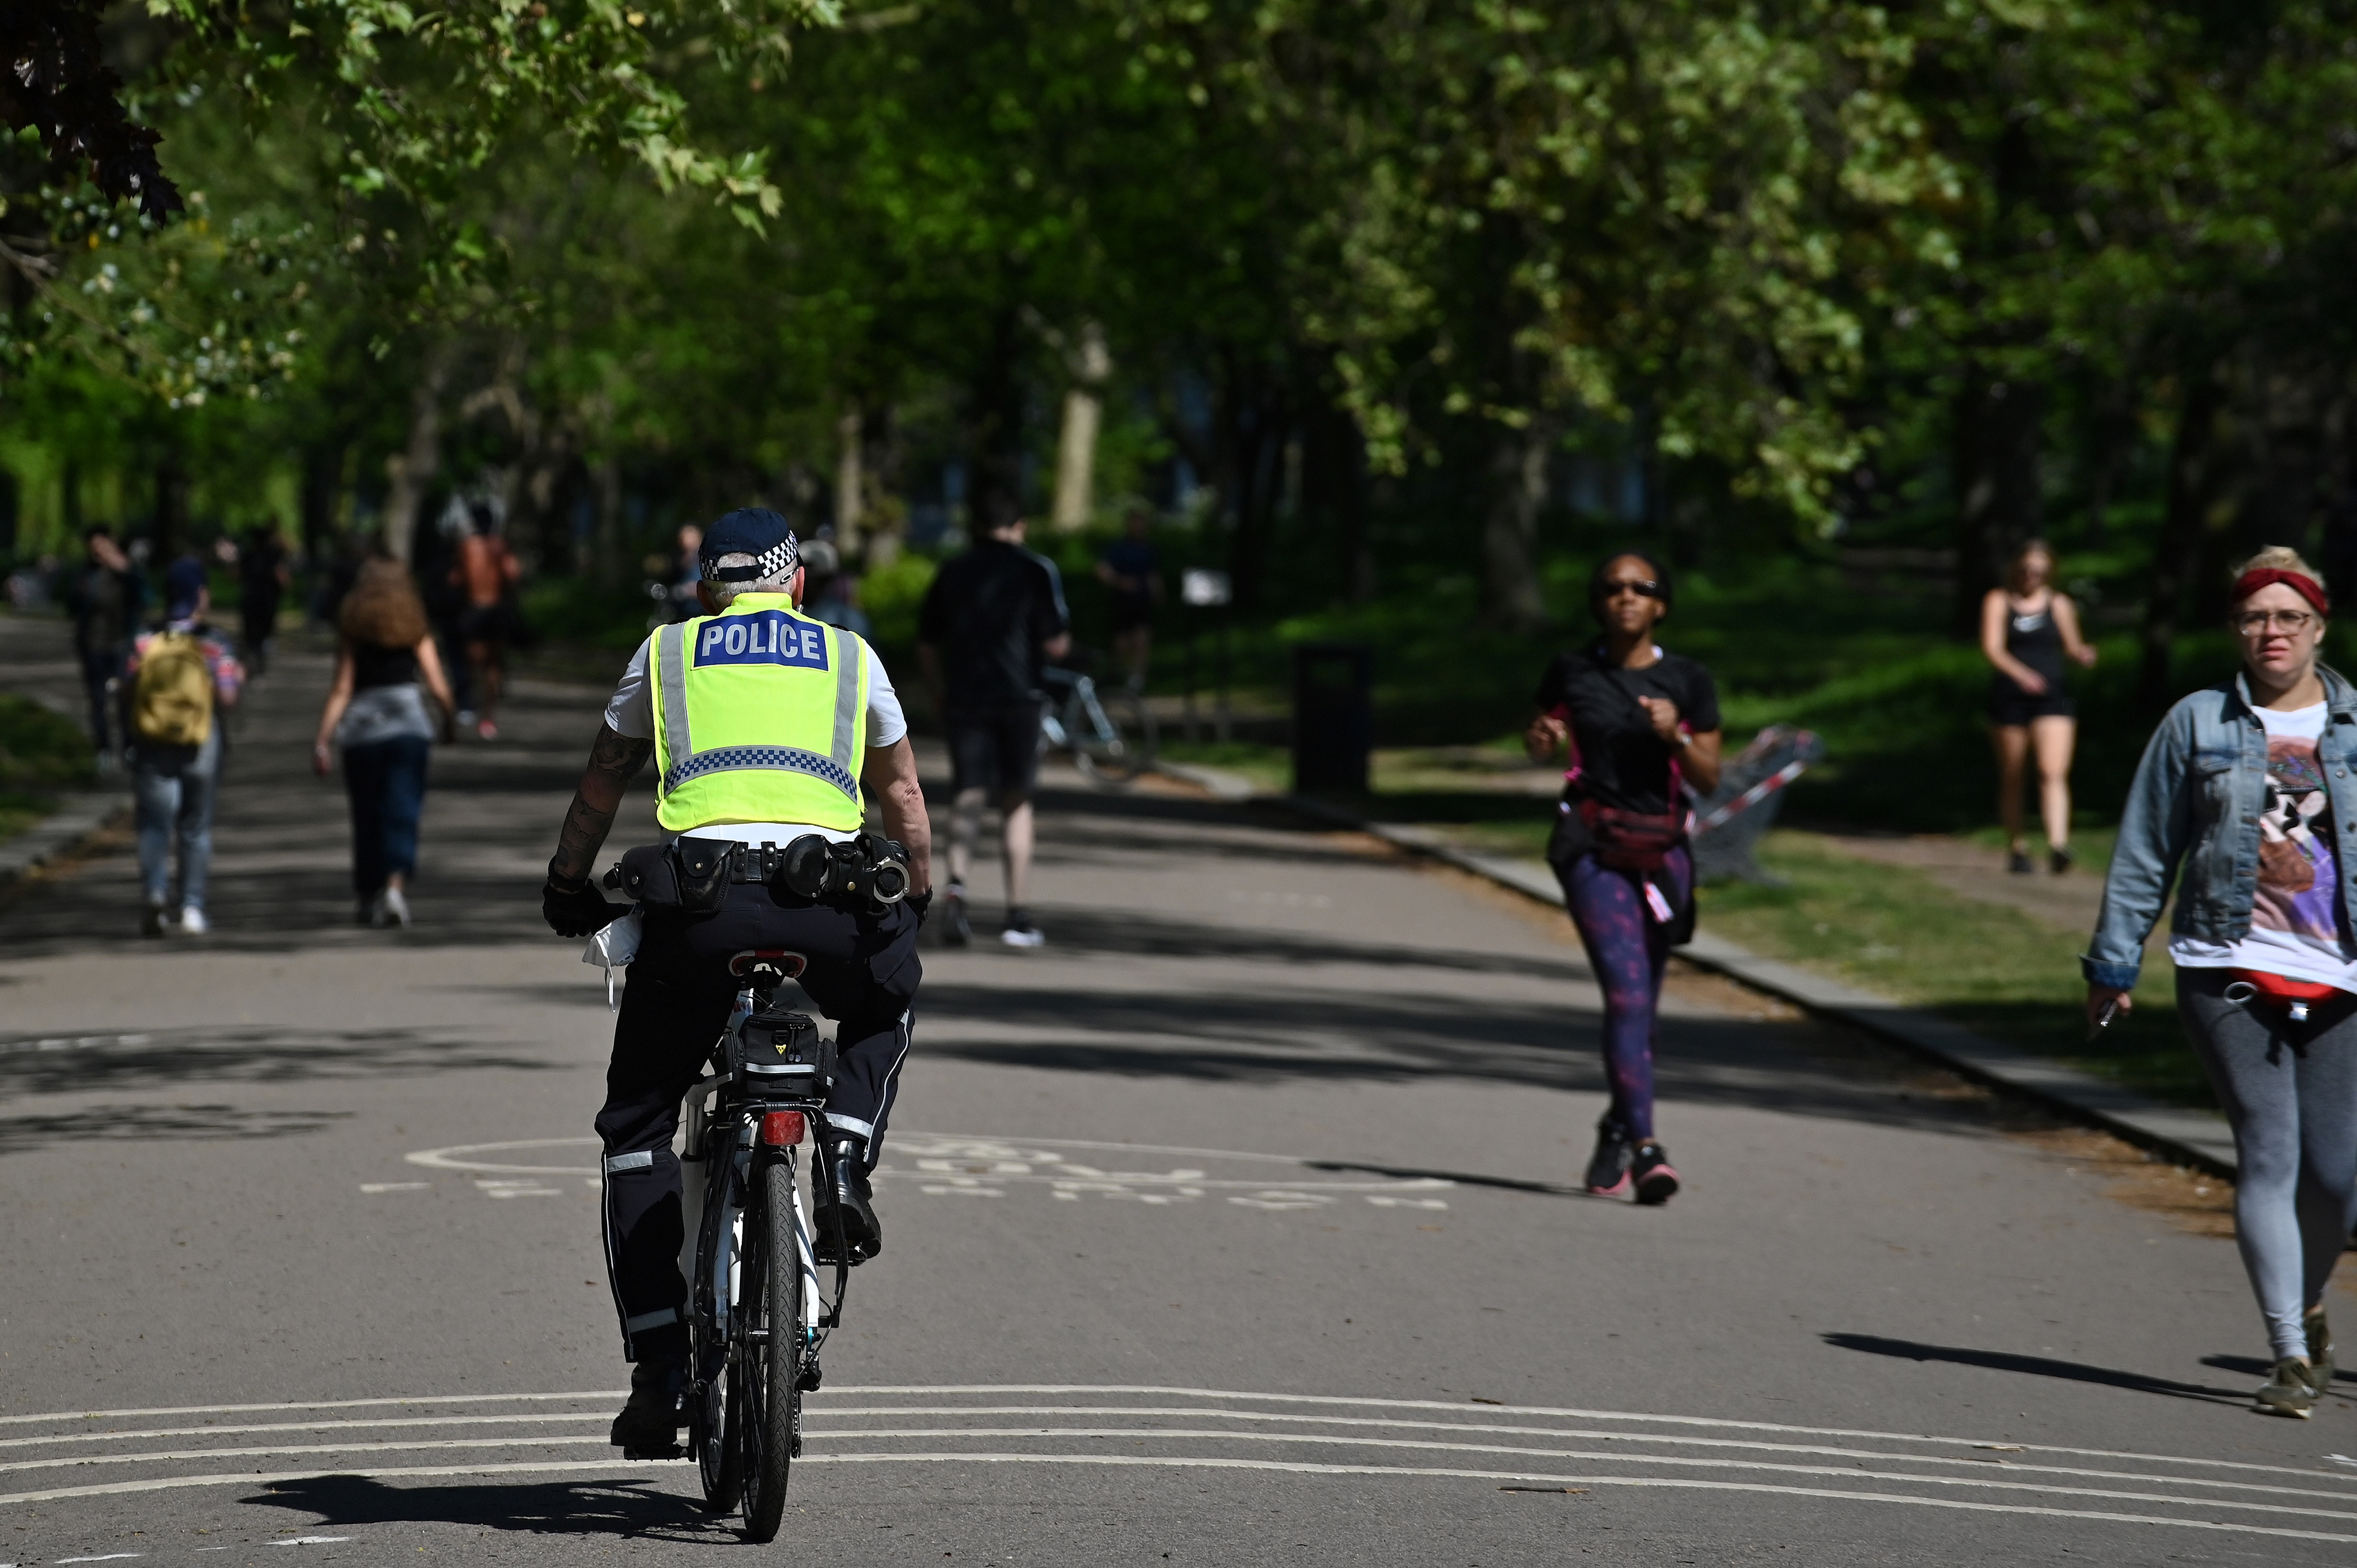 A police officer rides a bike as he patrols Victoria Park in London on April 25.